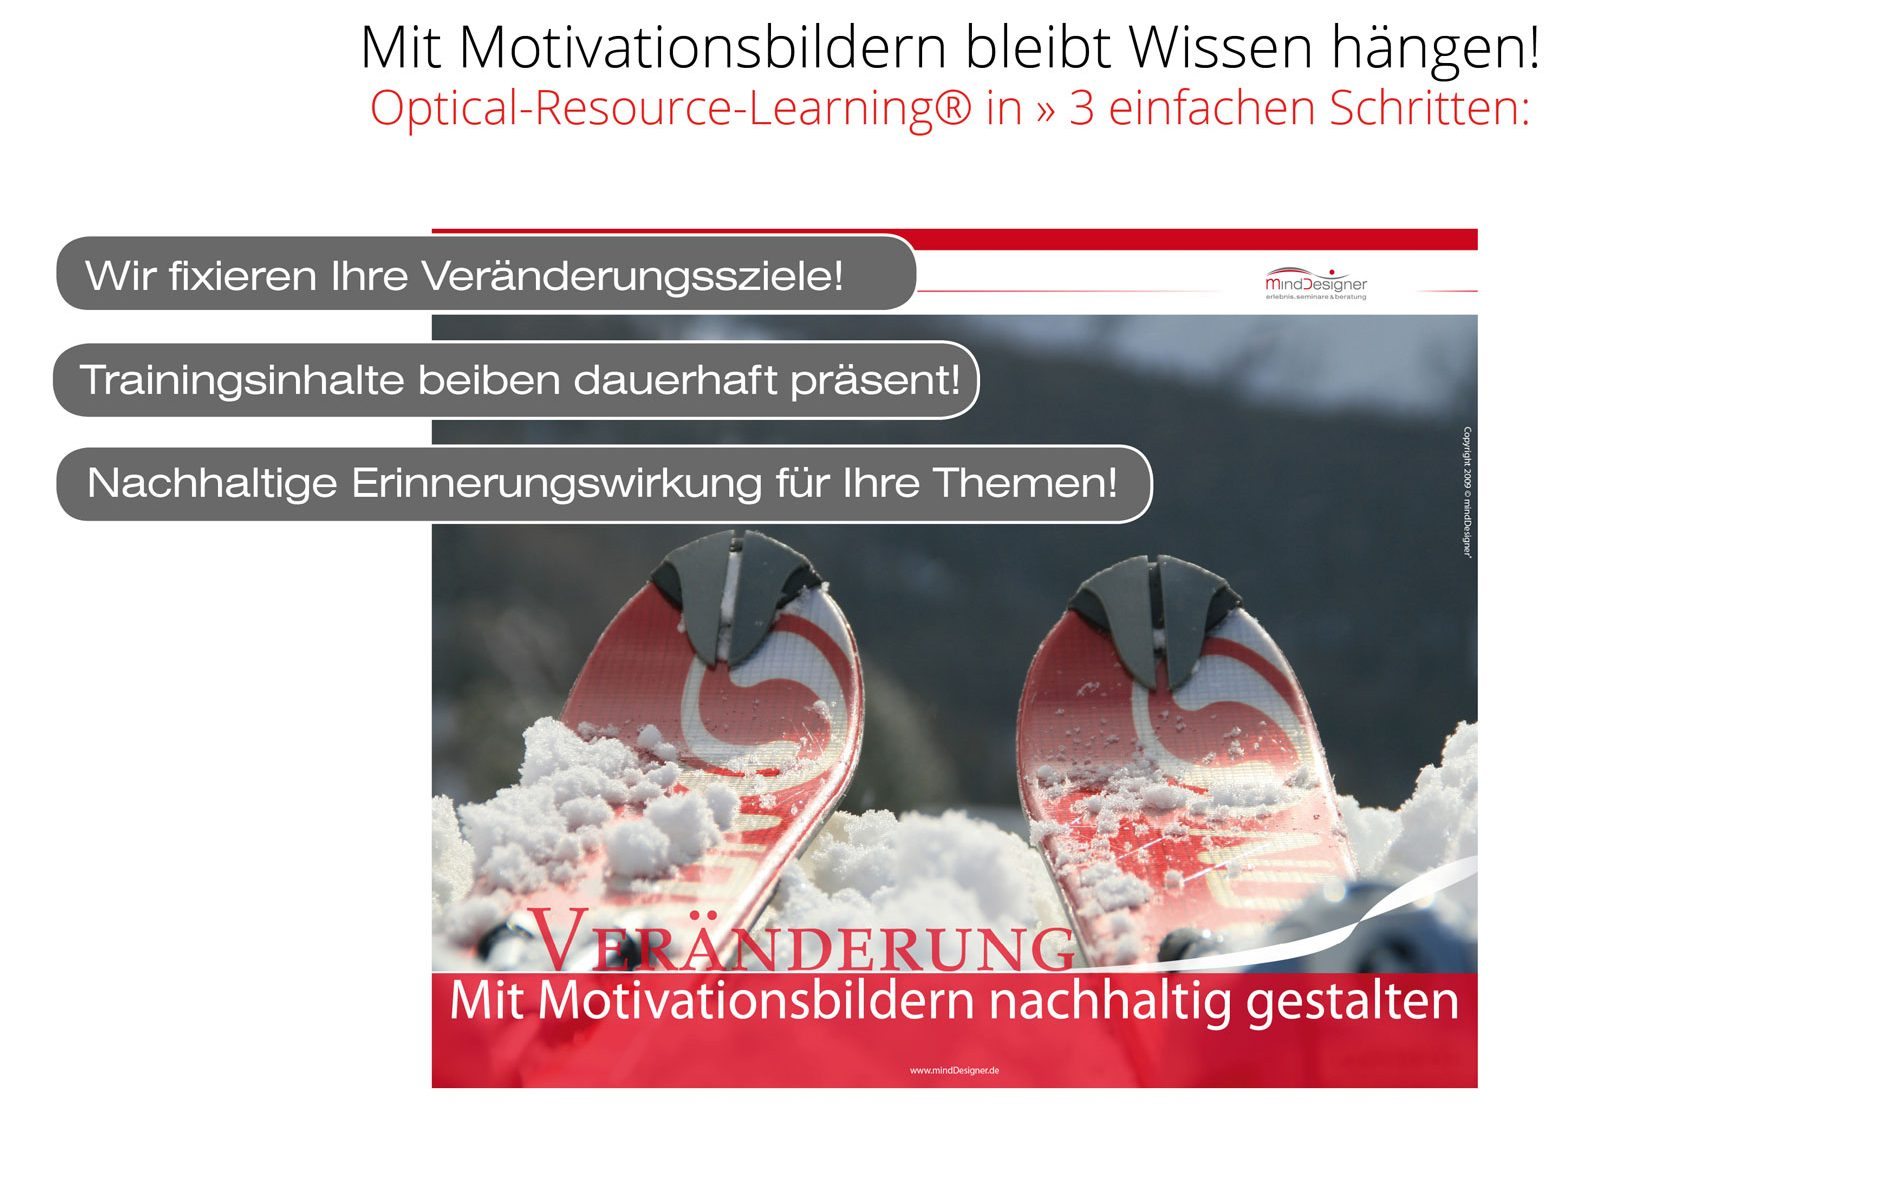 Motivationsbilder_Optical-Resource-Learning_Ueberblick_1900x1200-RTP-1-60